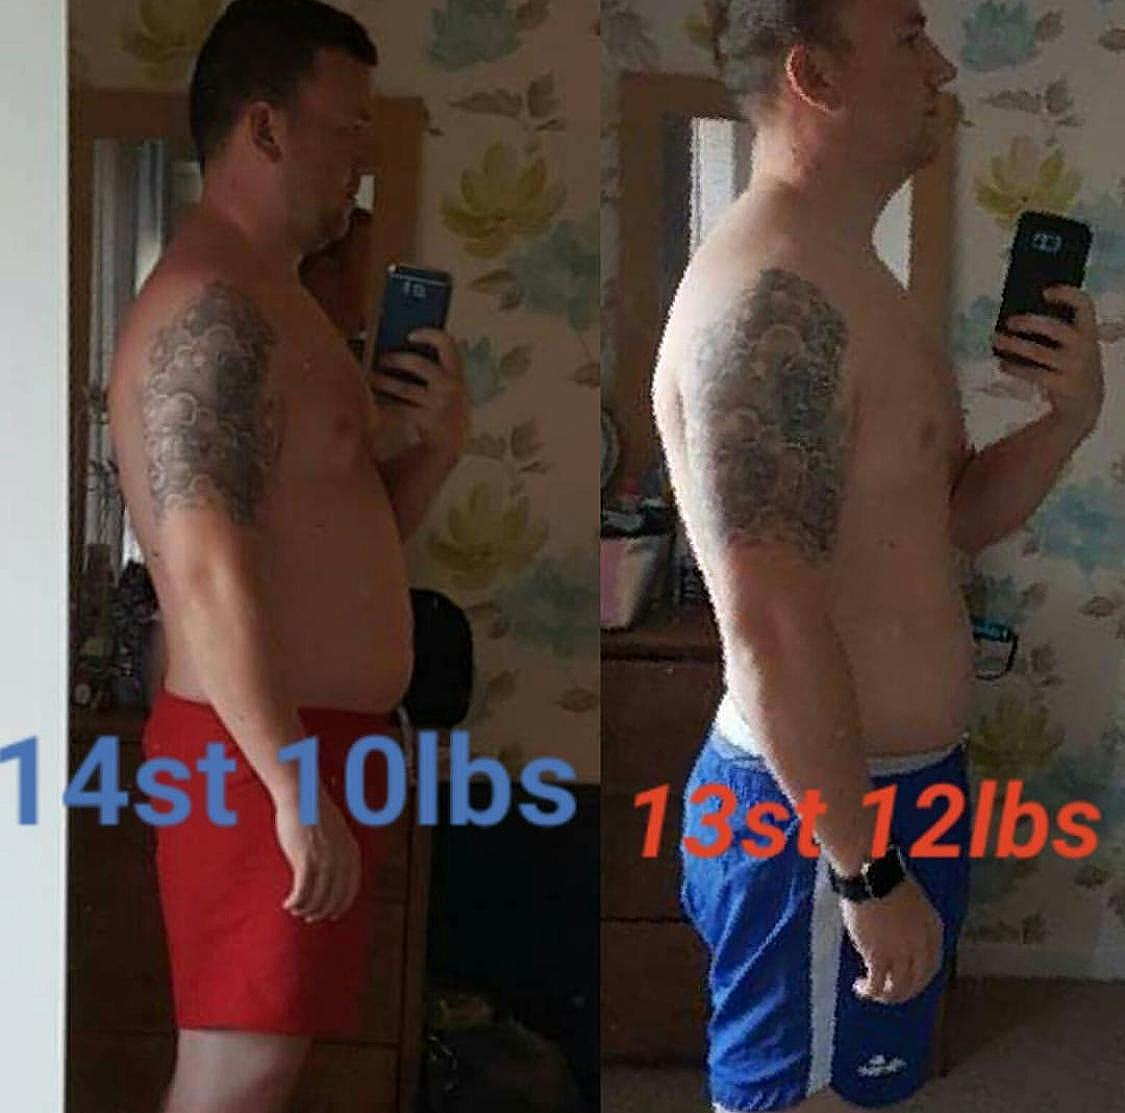 Meet Scott - 'Before I started I was very self-conscious about the way I looked in and out of clothes, Matt was very keen to help me help myself with his expert knowledge in exercise and nutrition. I have been very pleased with my progress over the last 6 weeks of working with Matt and would fully recommend anyone who feels the way I did to venture out and make that change too! Thank you for this brilliant opportunity Matt!